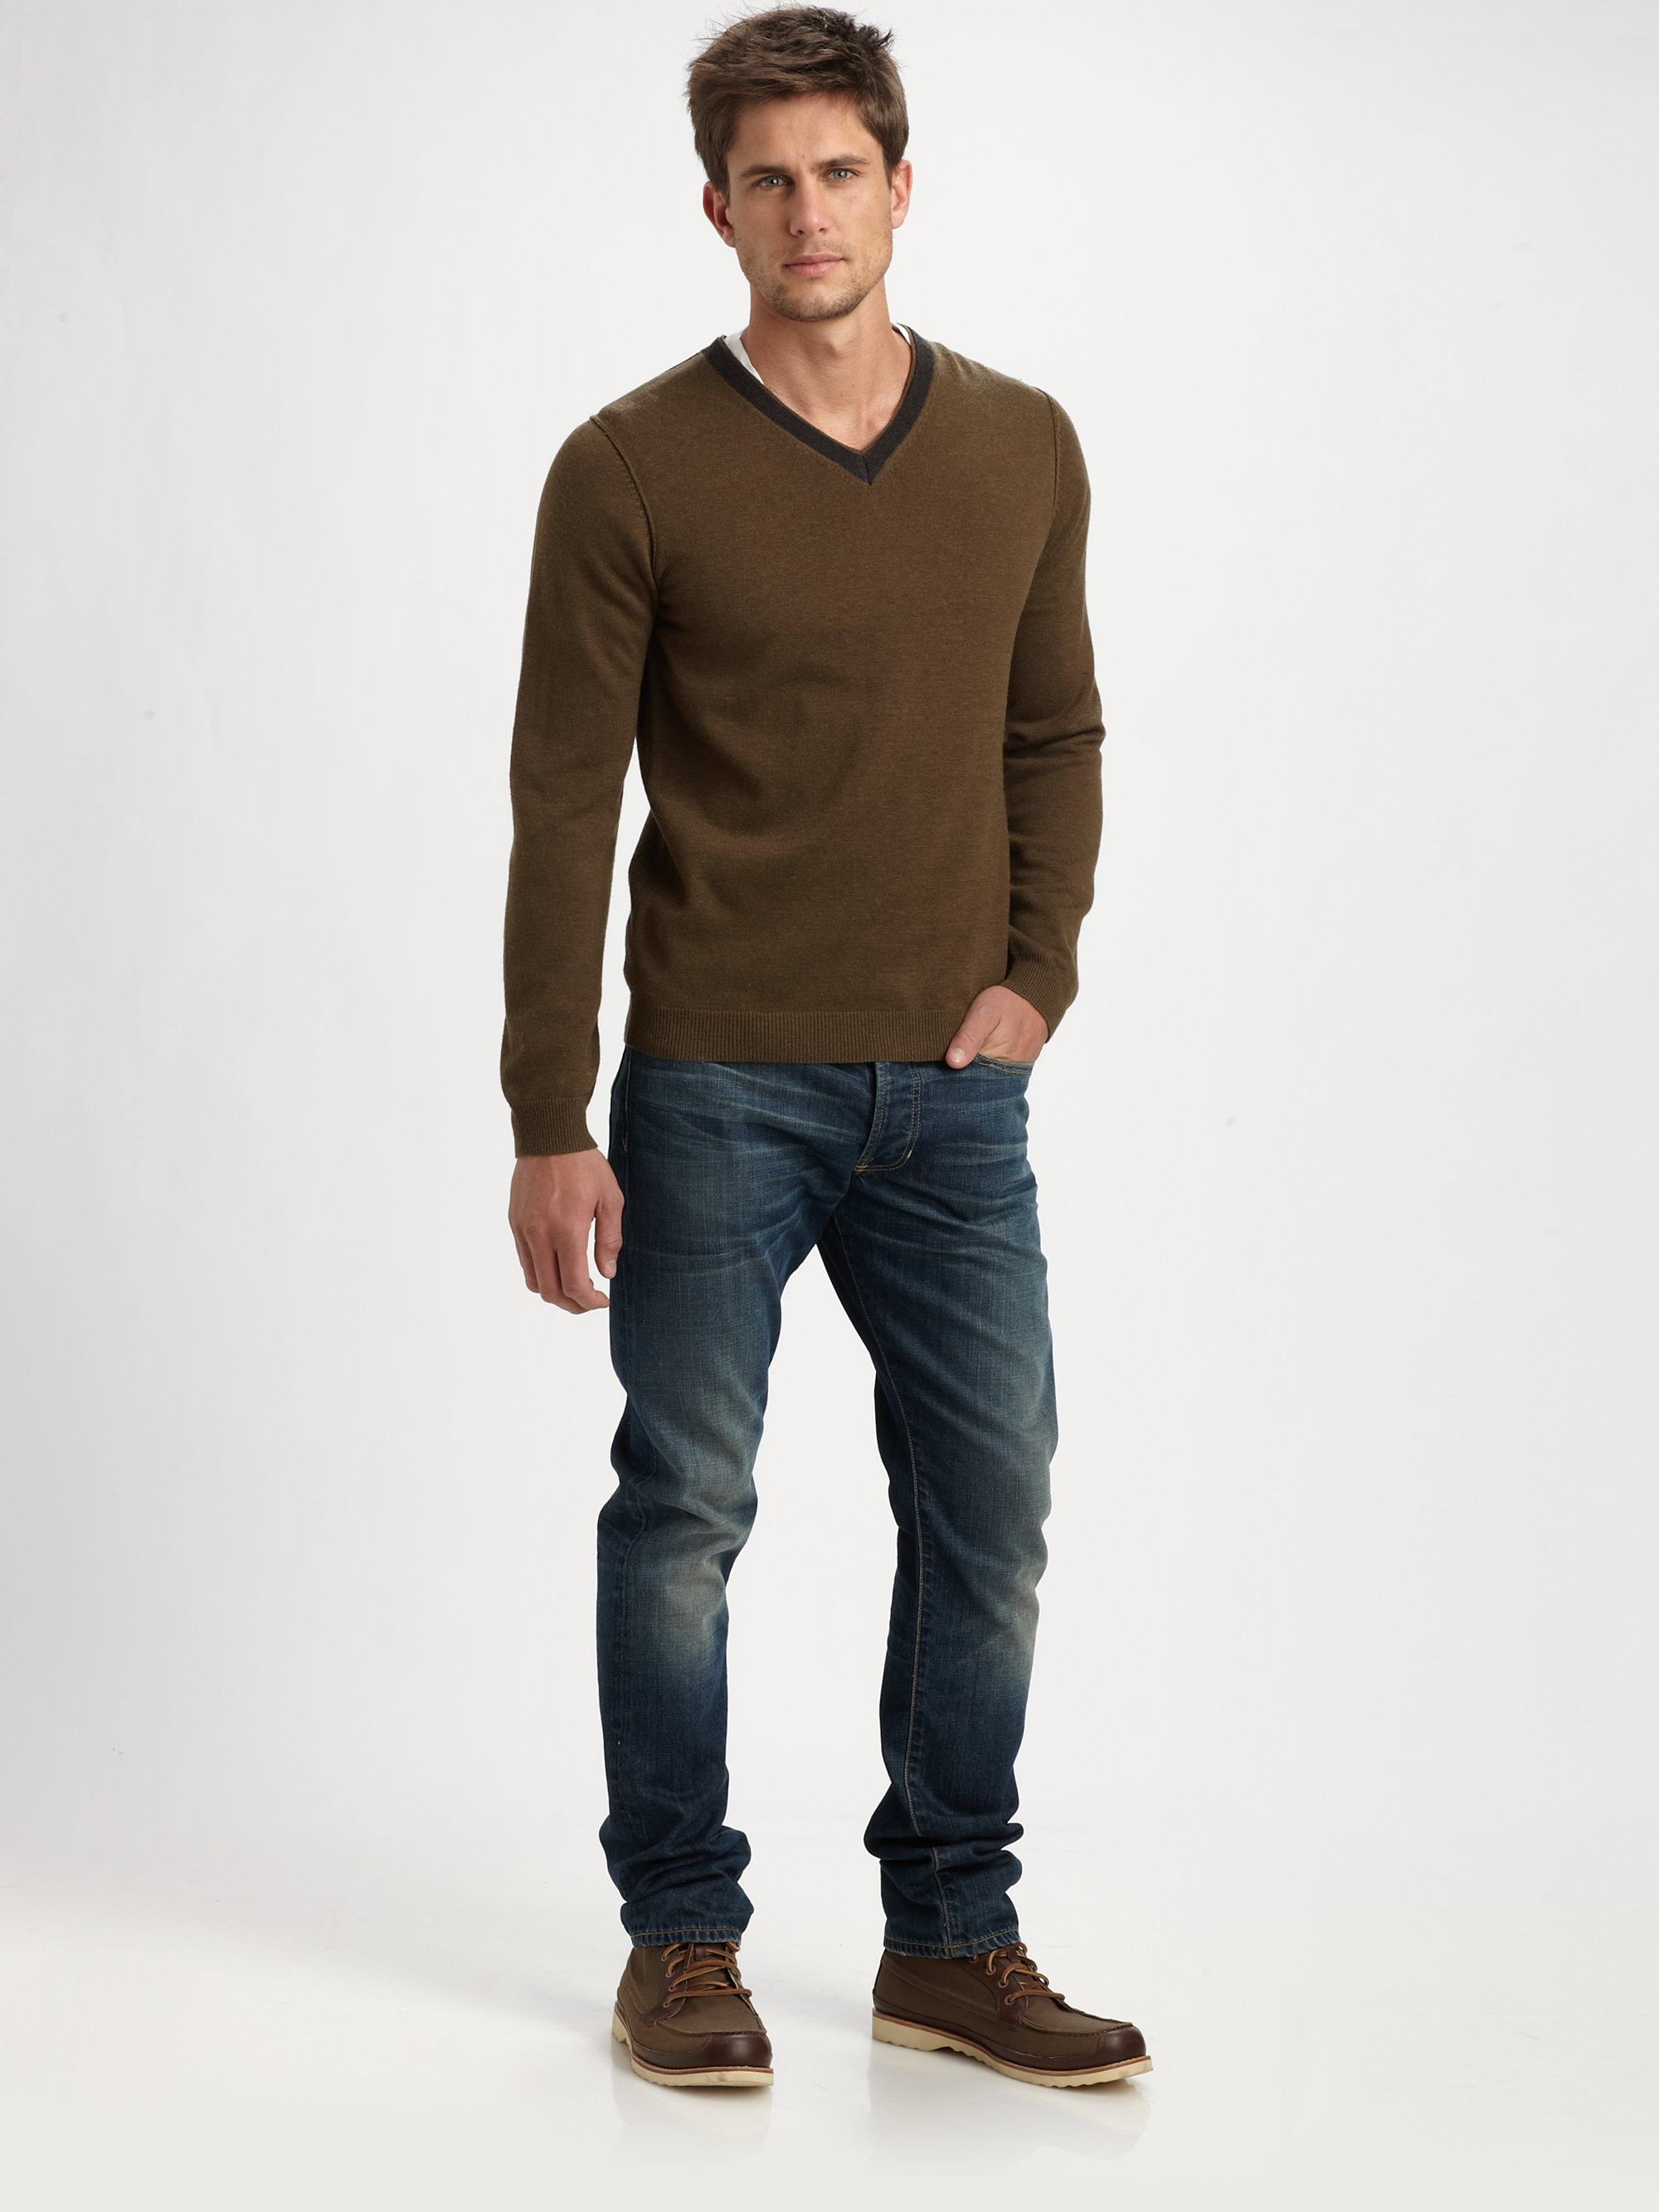 Lyst Vince Contrast Vneck Sweater In Green For Men